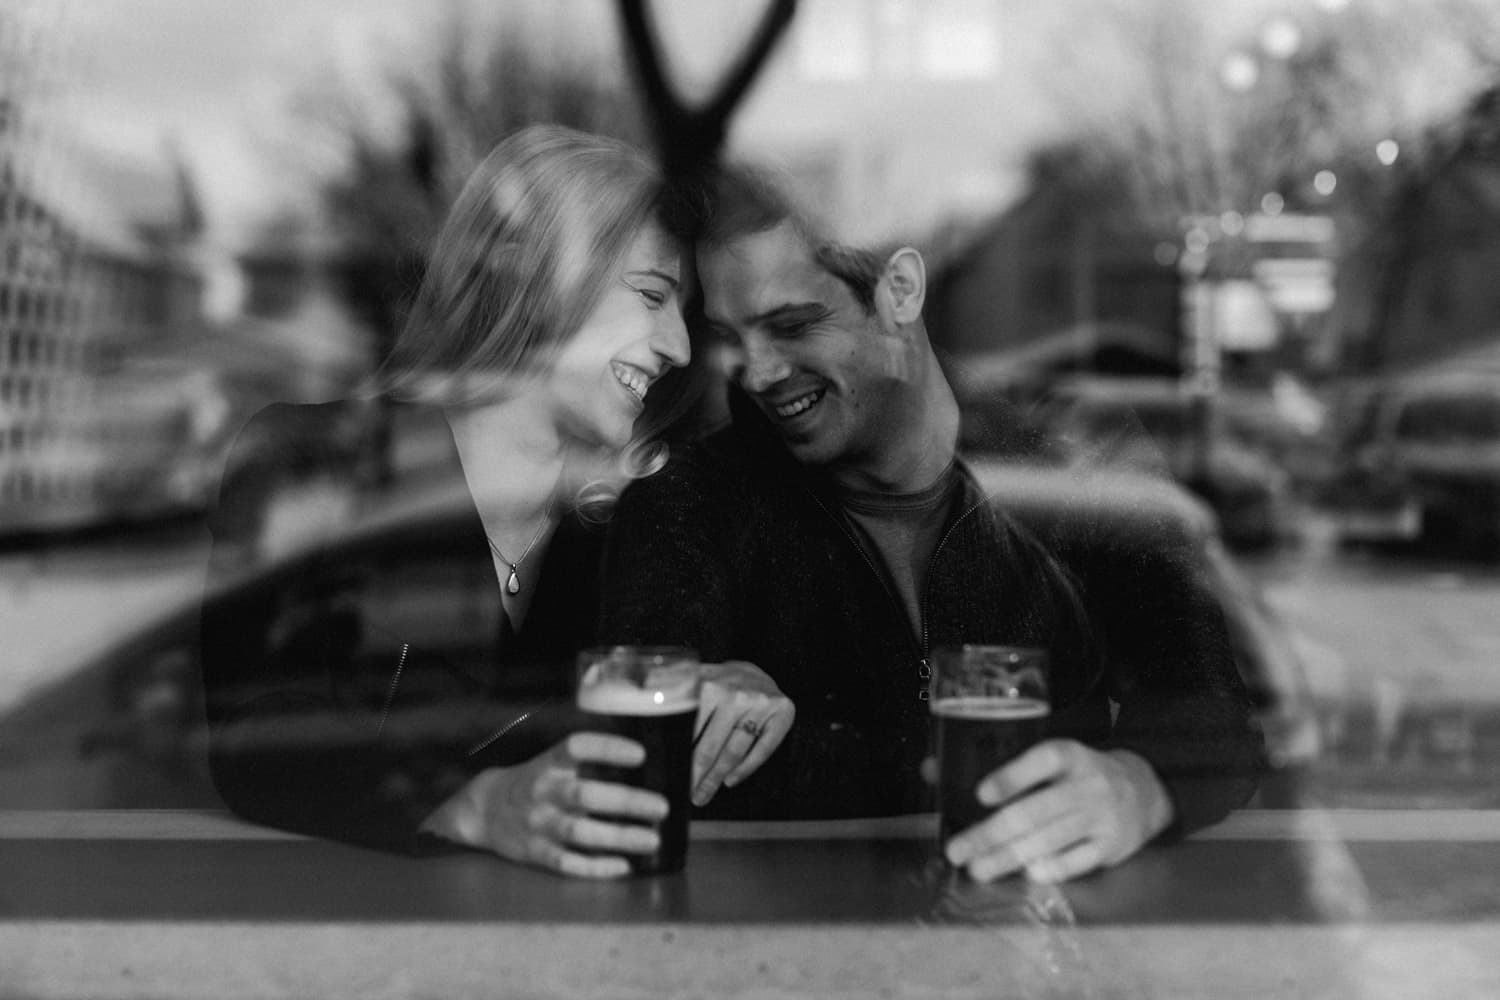 Engagement session at Able Brewery in Minneapolis